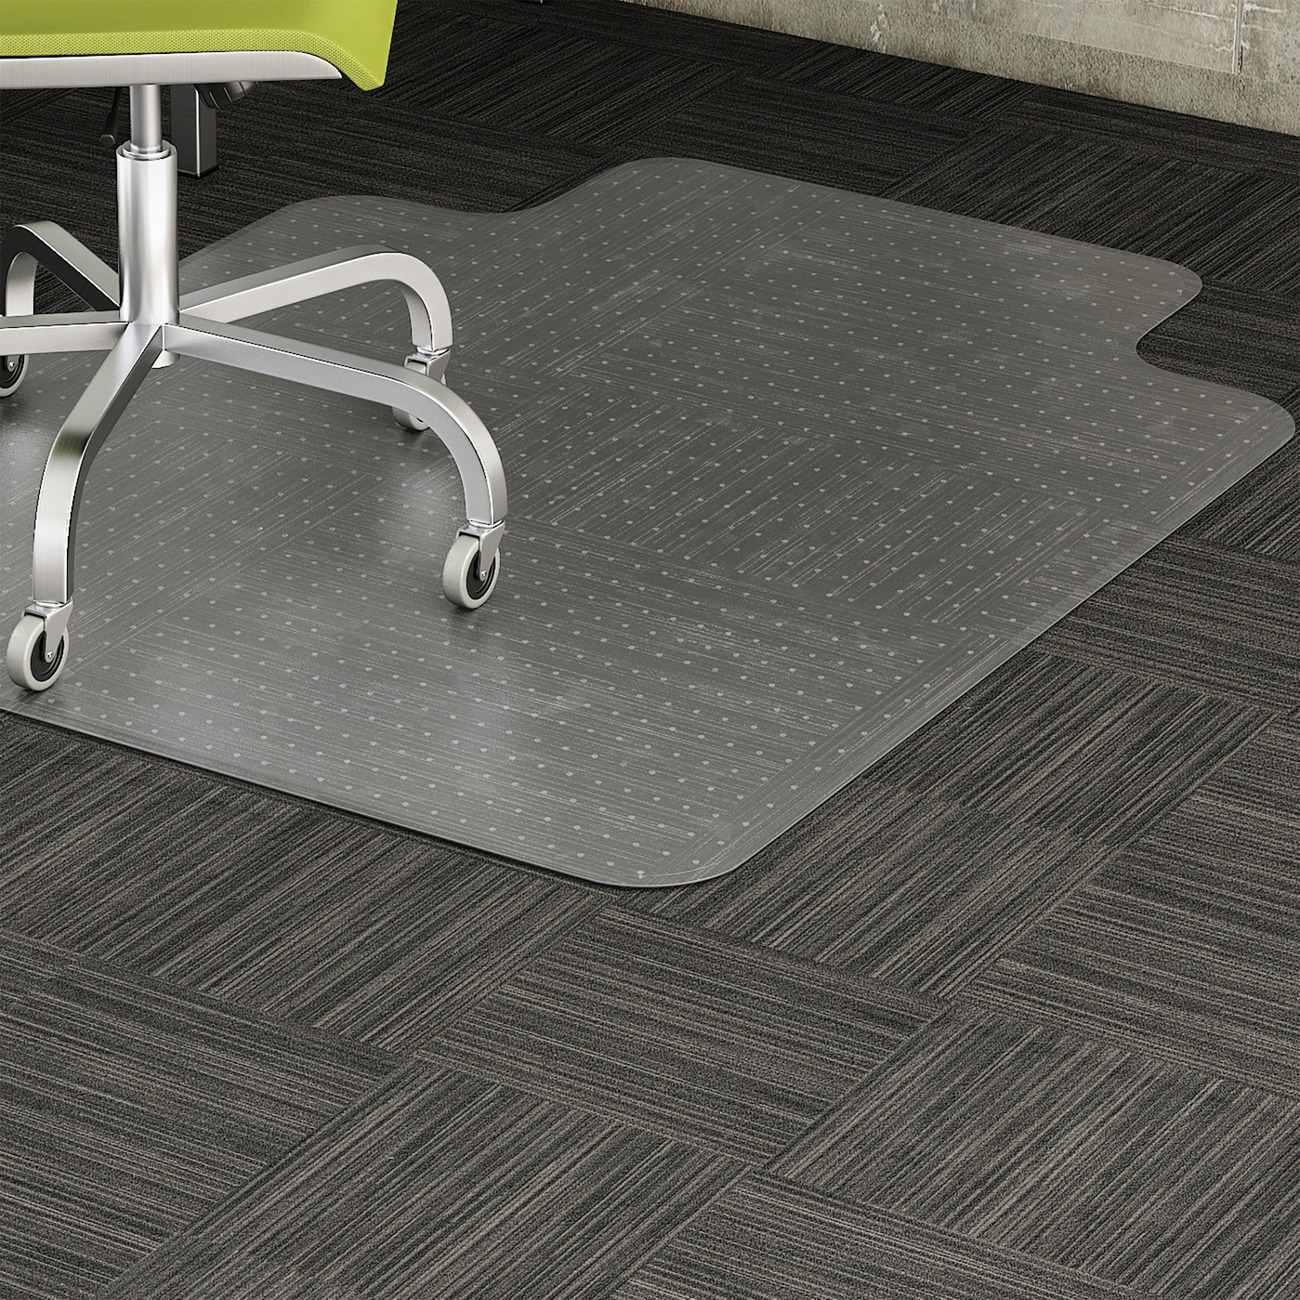 office chair mat 36 x 60 seat covers for chairs home furniture mats and accessories